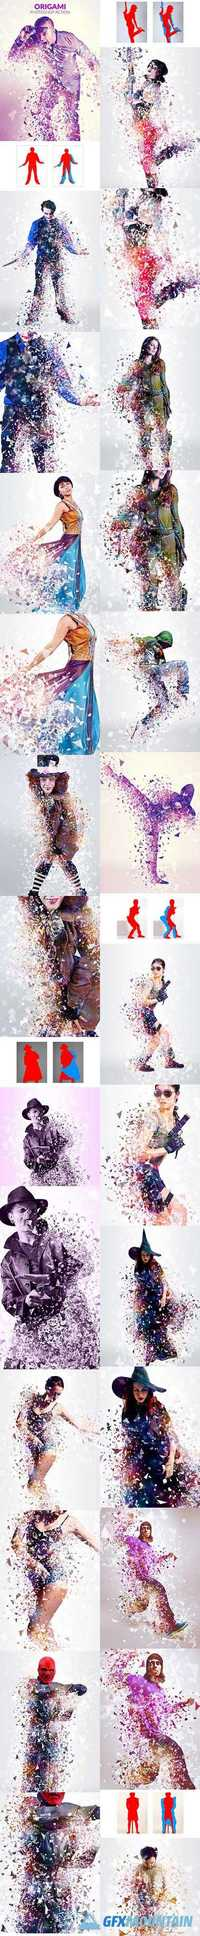 Graphicriver Origami Photoshop Action 19433377